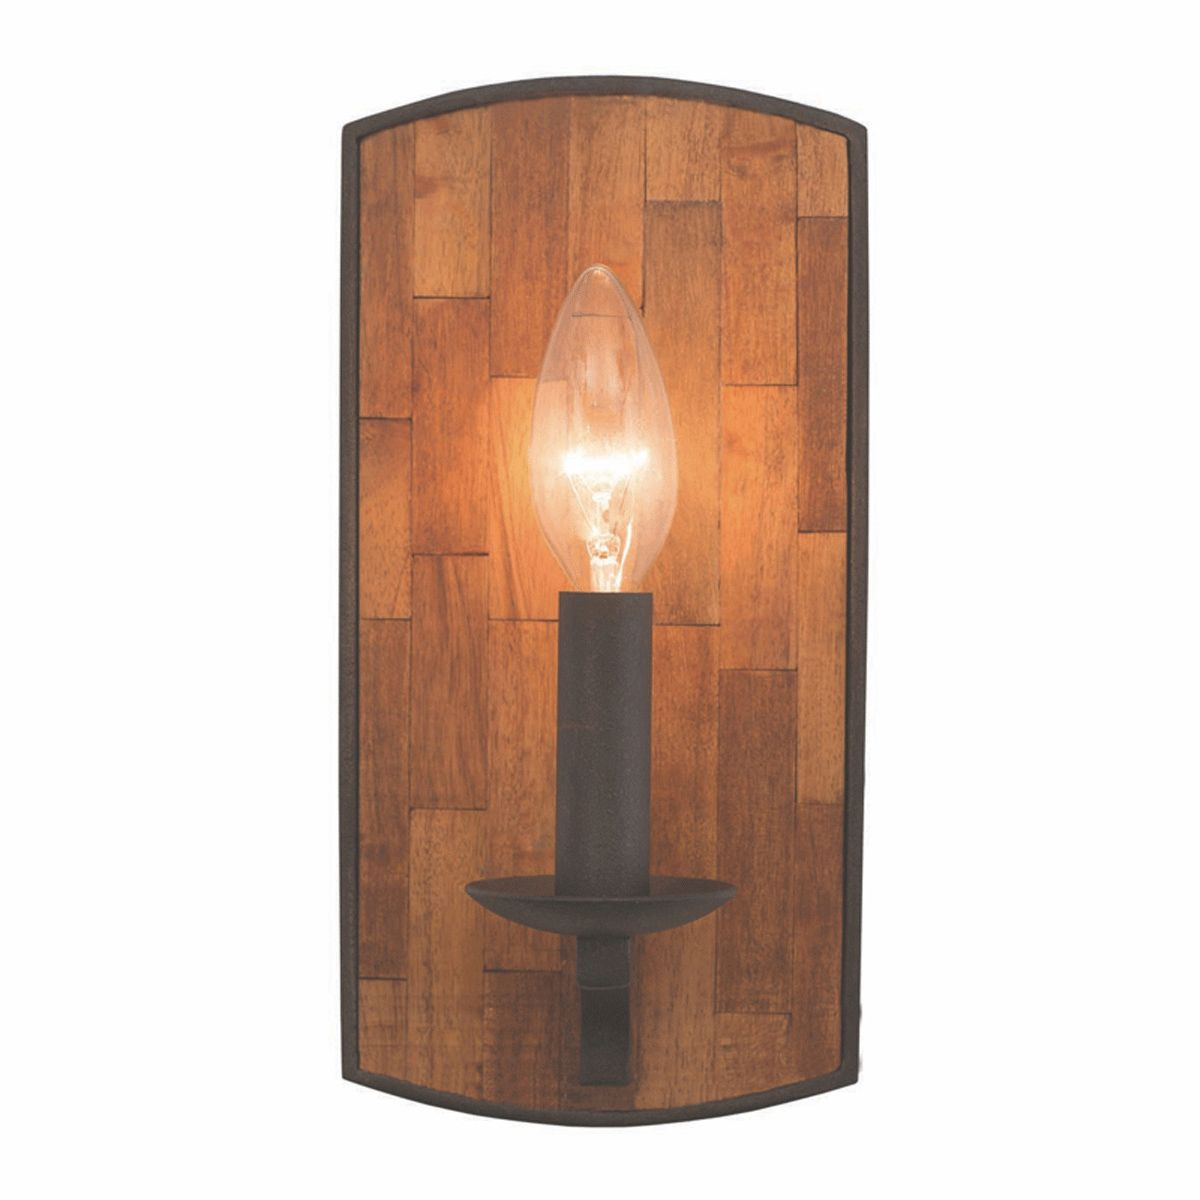 Lansdale 1 Light Wall Sconce